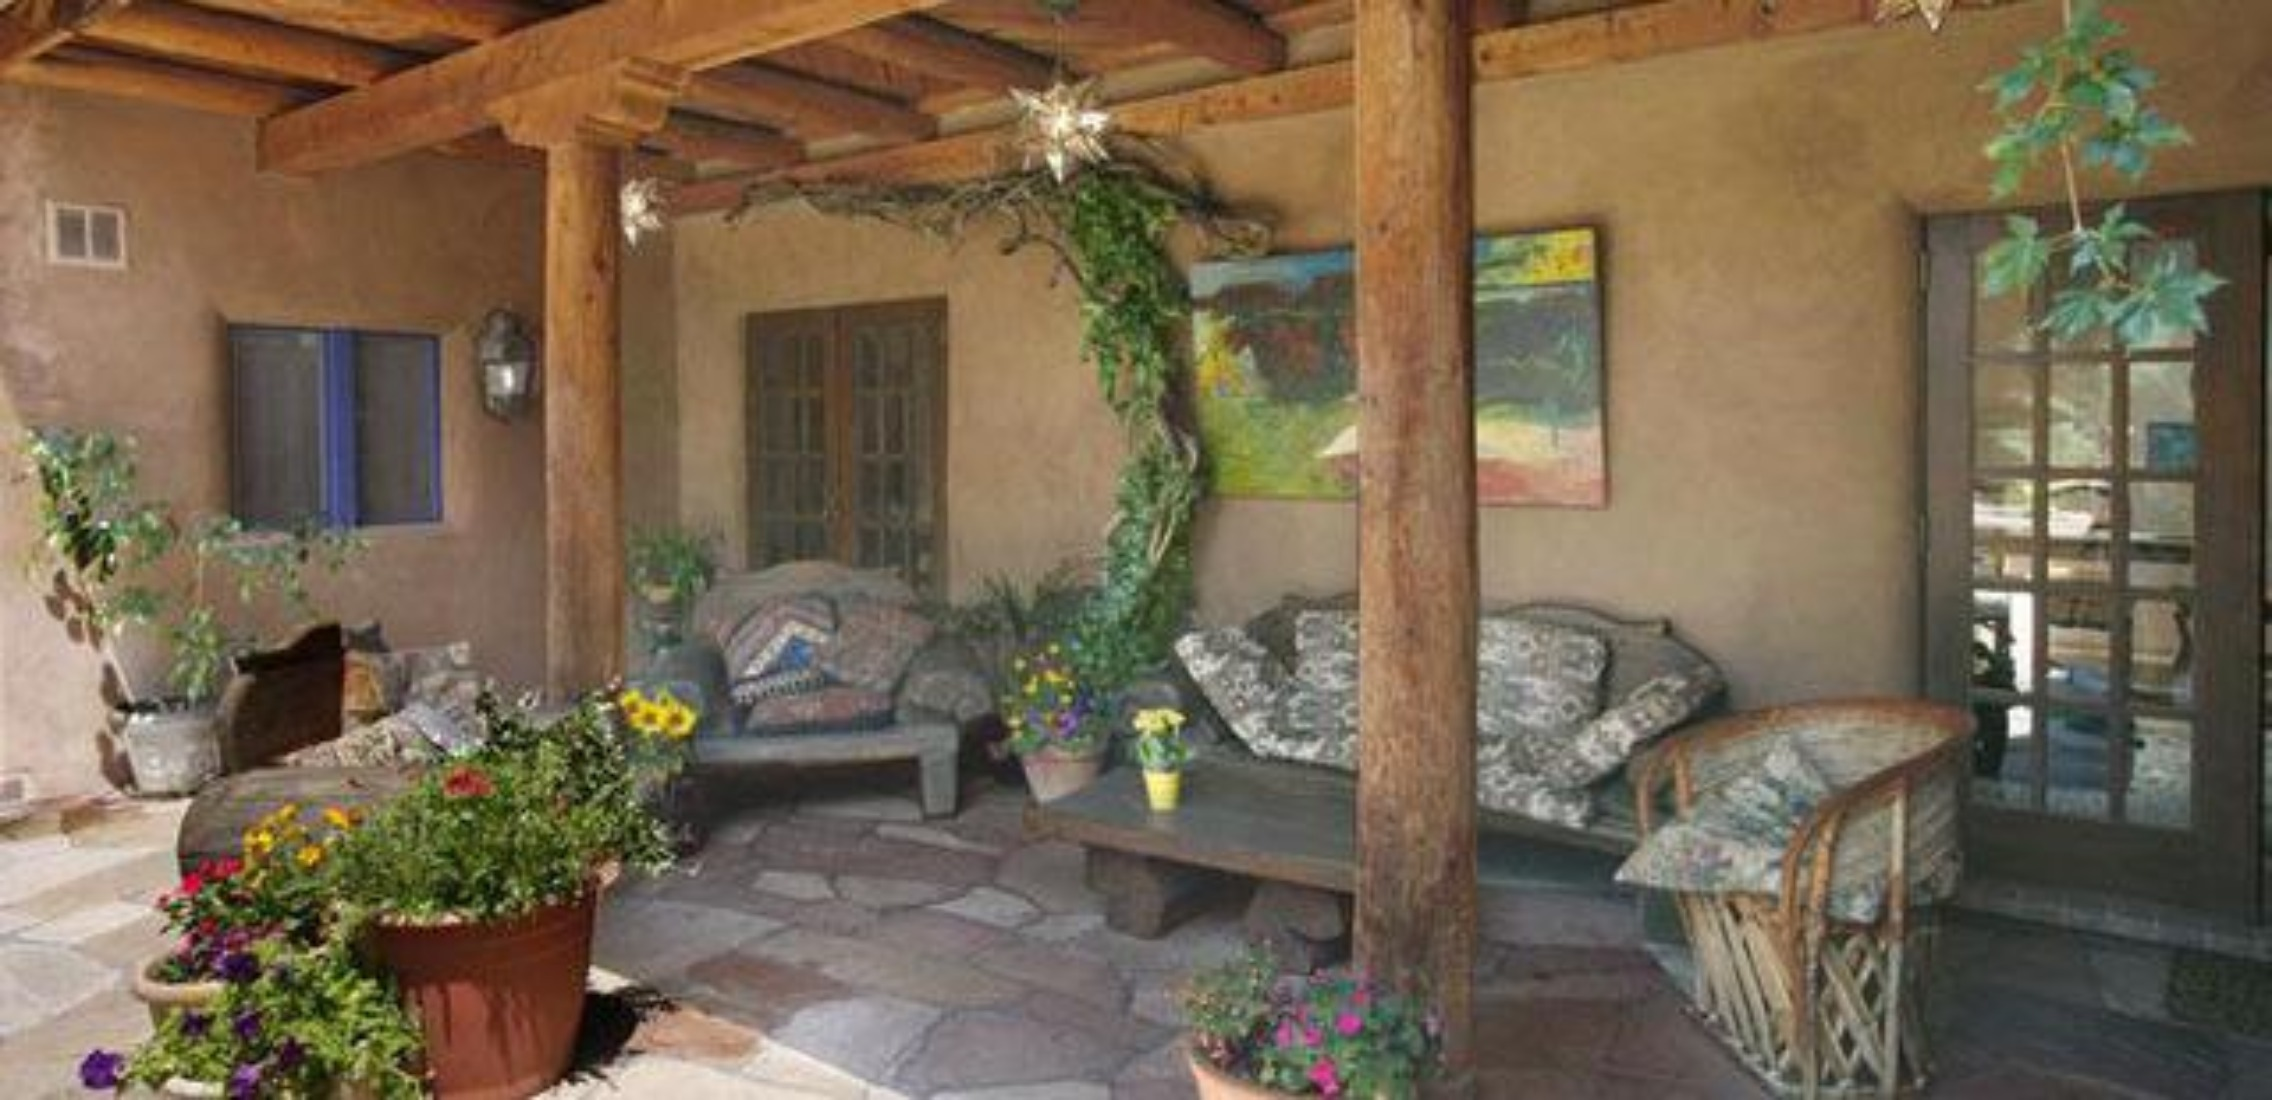 A living room filled with furniture and a fire place at Hacienda Nicholas Bed & Breakfast Inn.